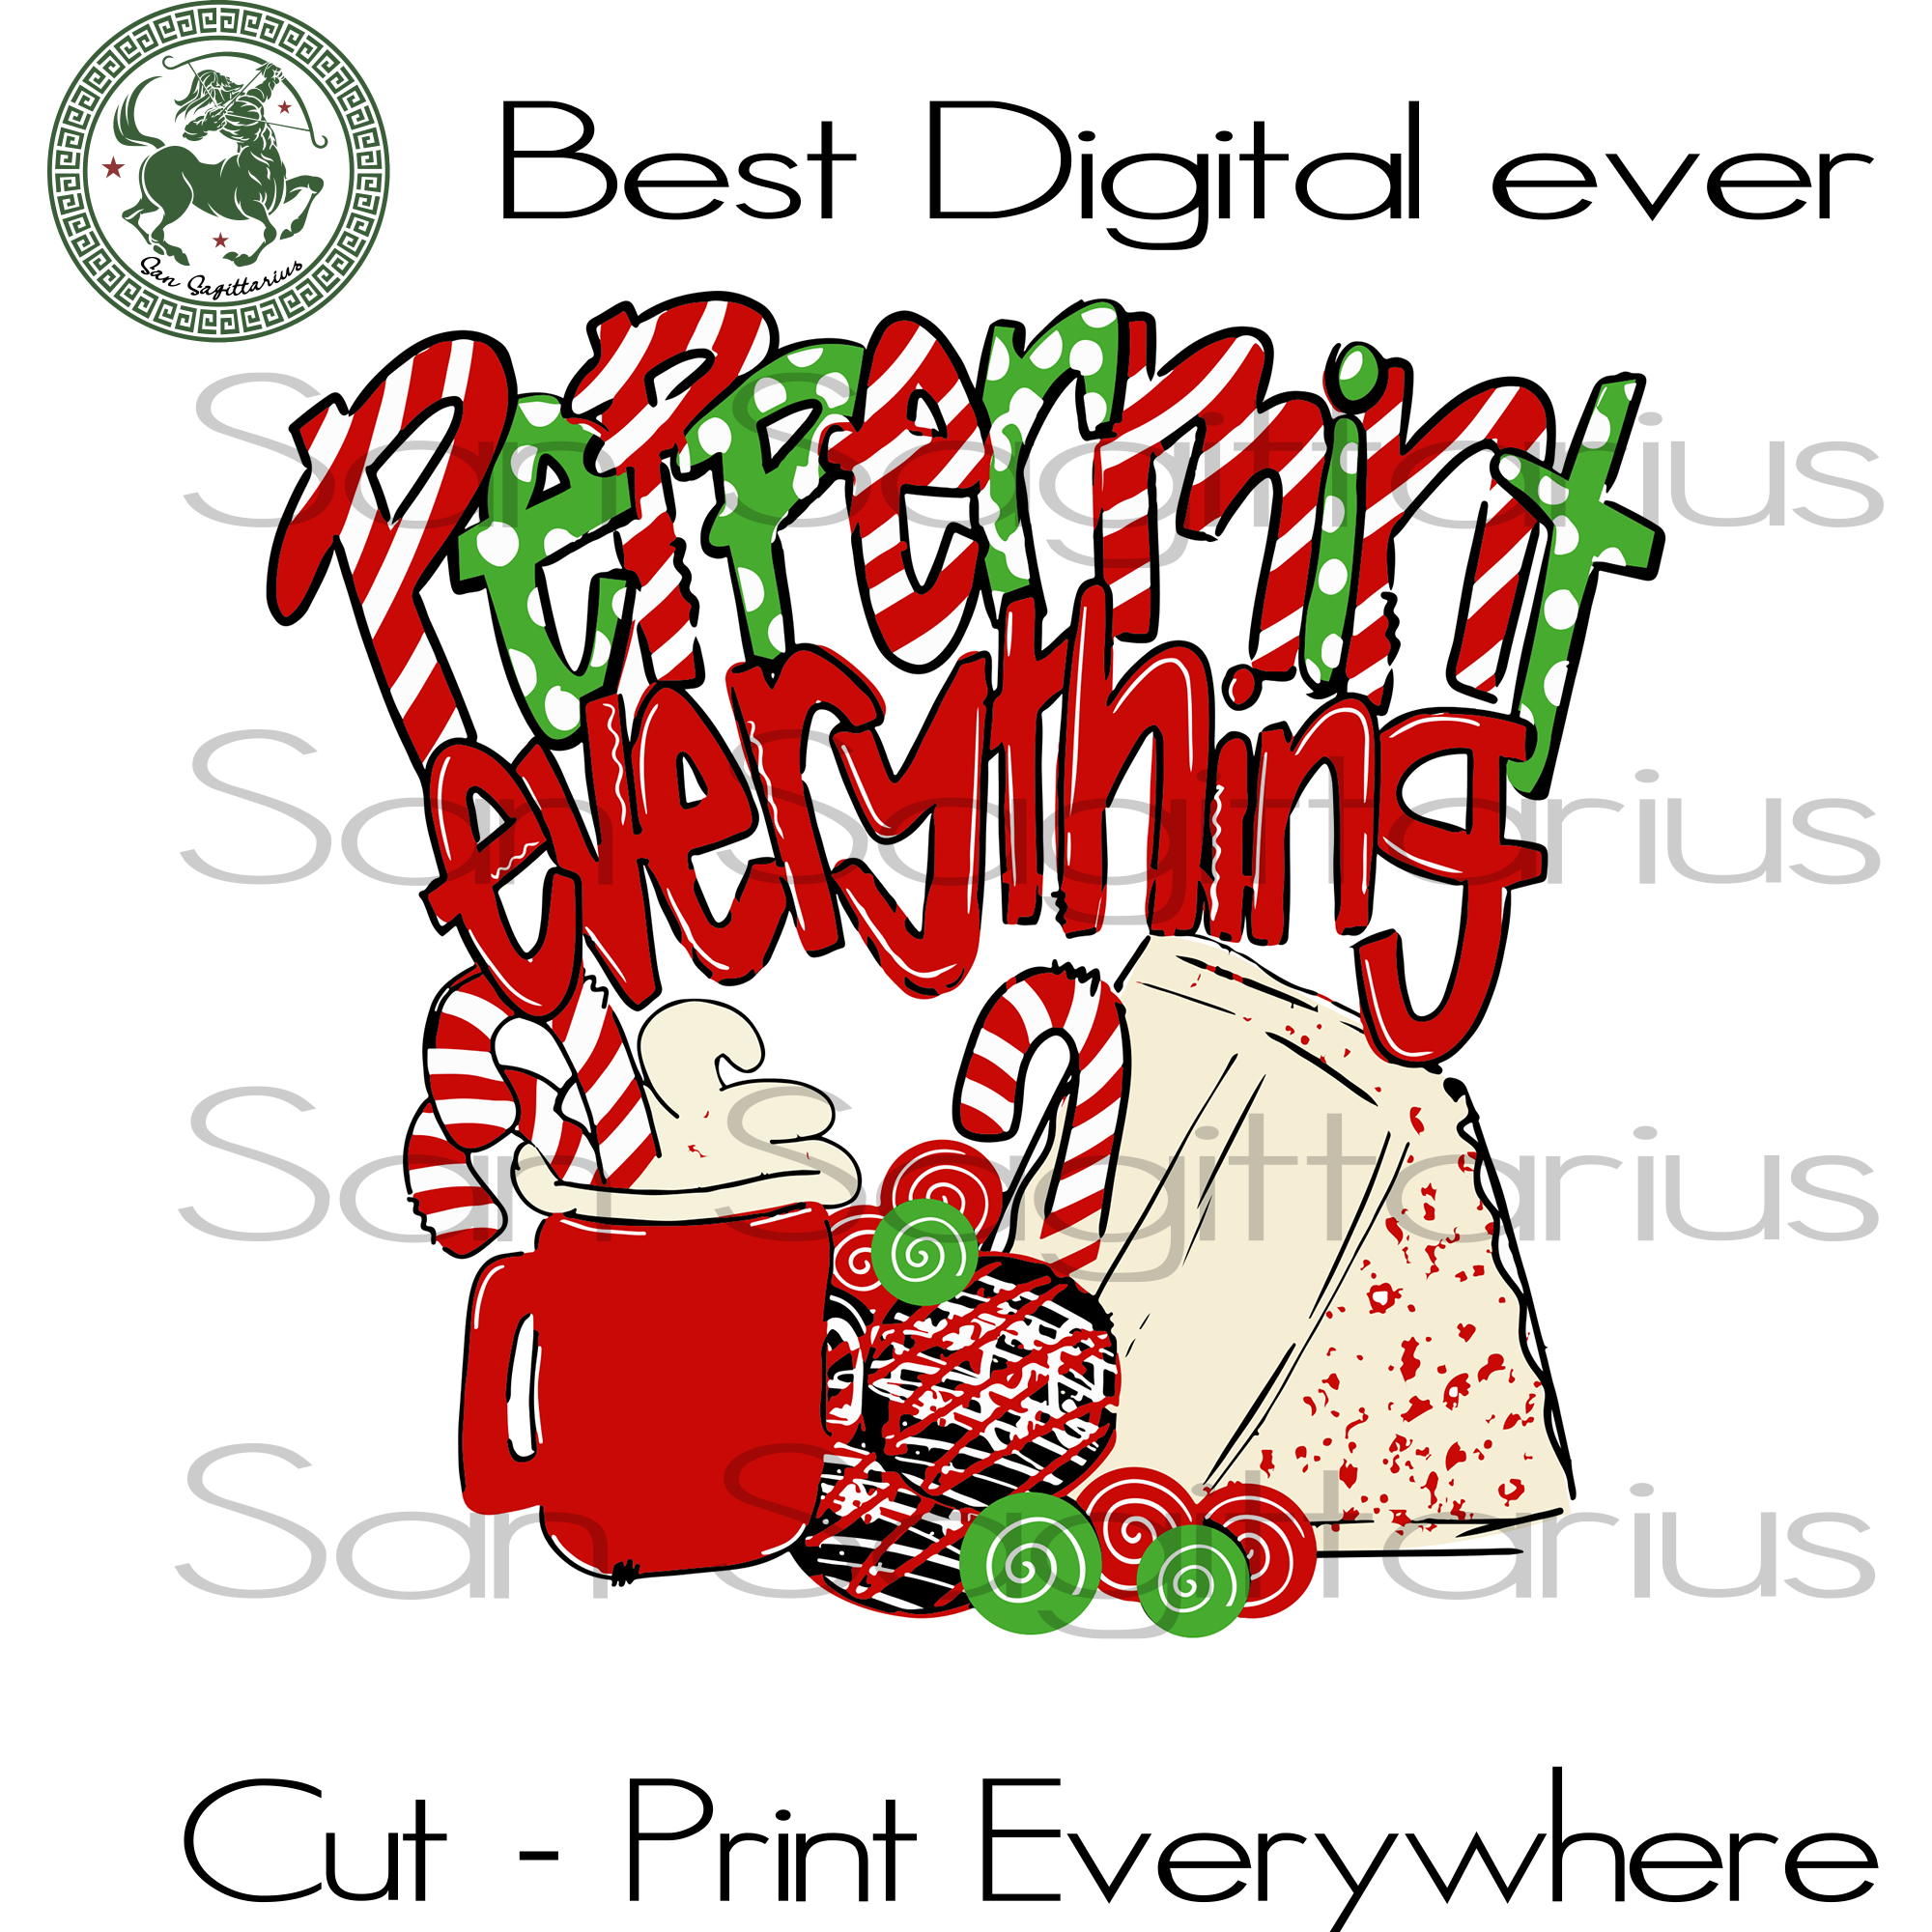 Peppermint Everything, Christmas Svg, Christmas Gifts, Merry Christmas, Christmas Holiday, Christmas Party, Funny Christmas, Xmas Gift, Christmas Gift Ideas, Merry Christmas Svg, Holidays, Ch